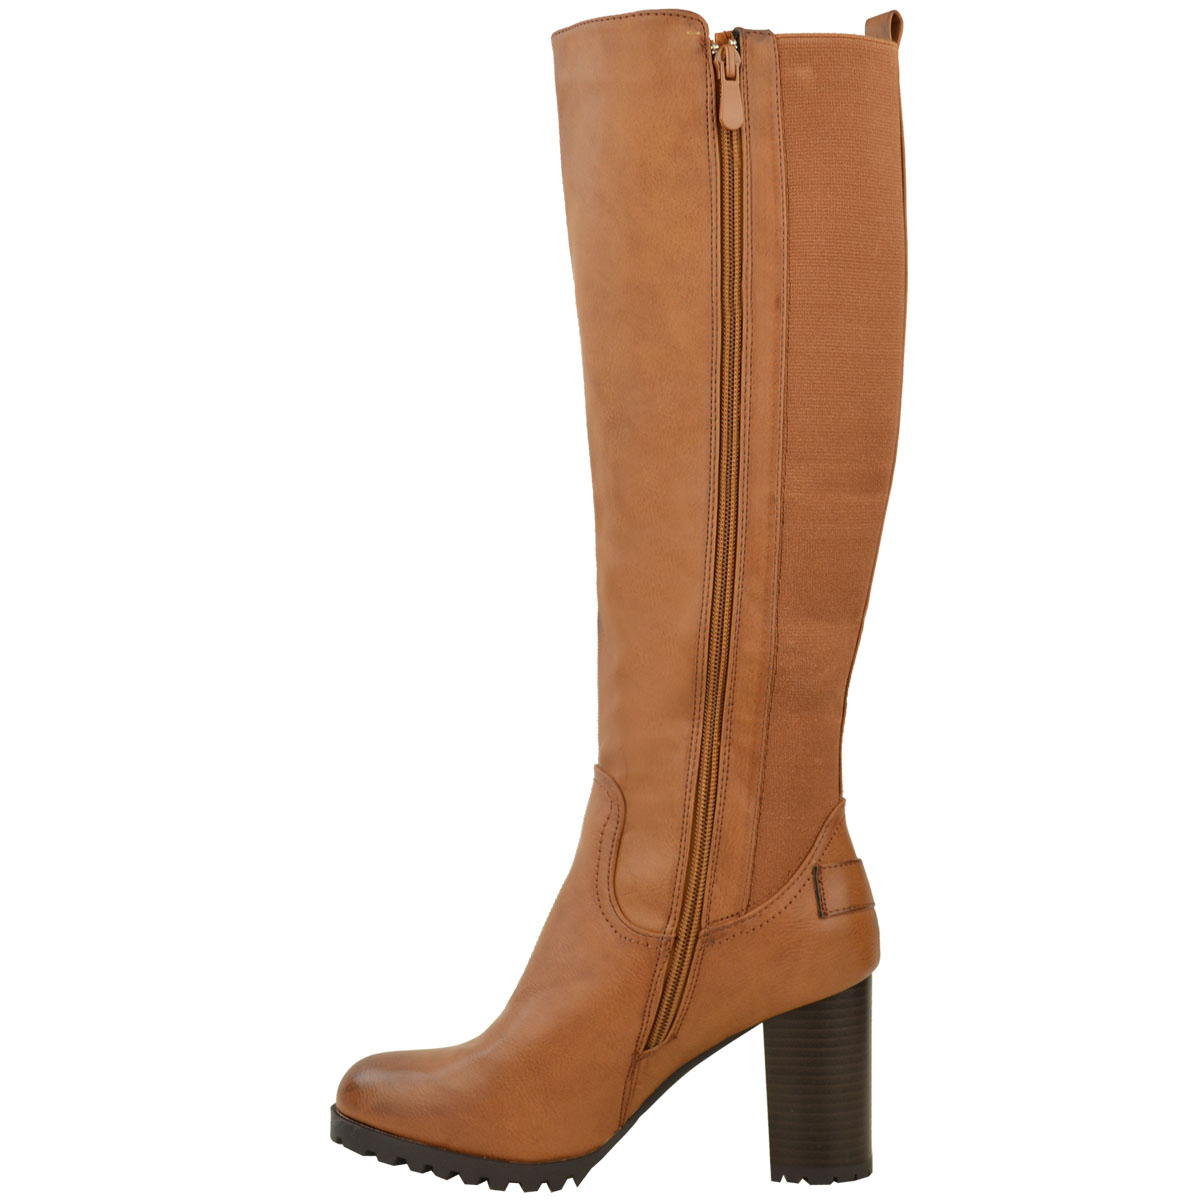 Creative Womens Brown Leather Style Stretch Wide Calf Flat Knee High Biker Boots